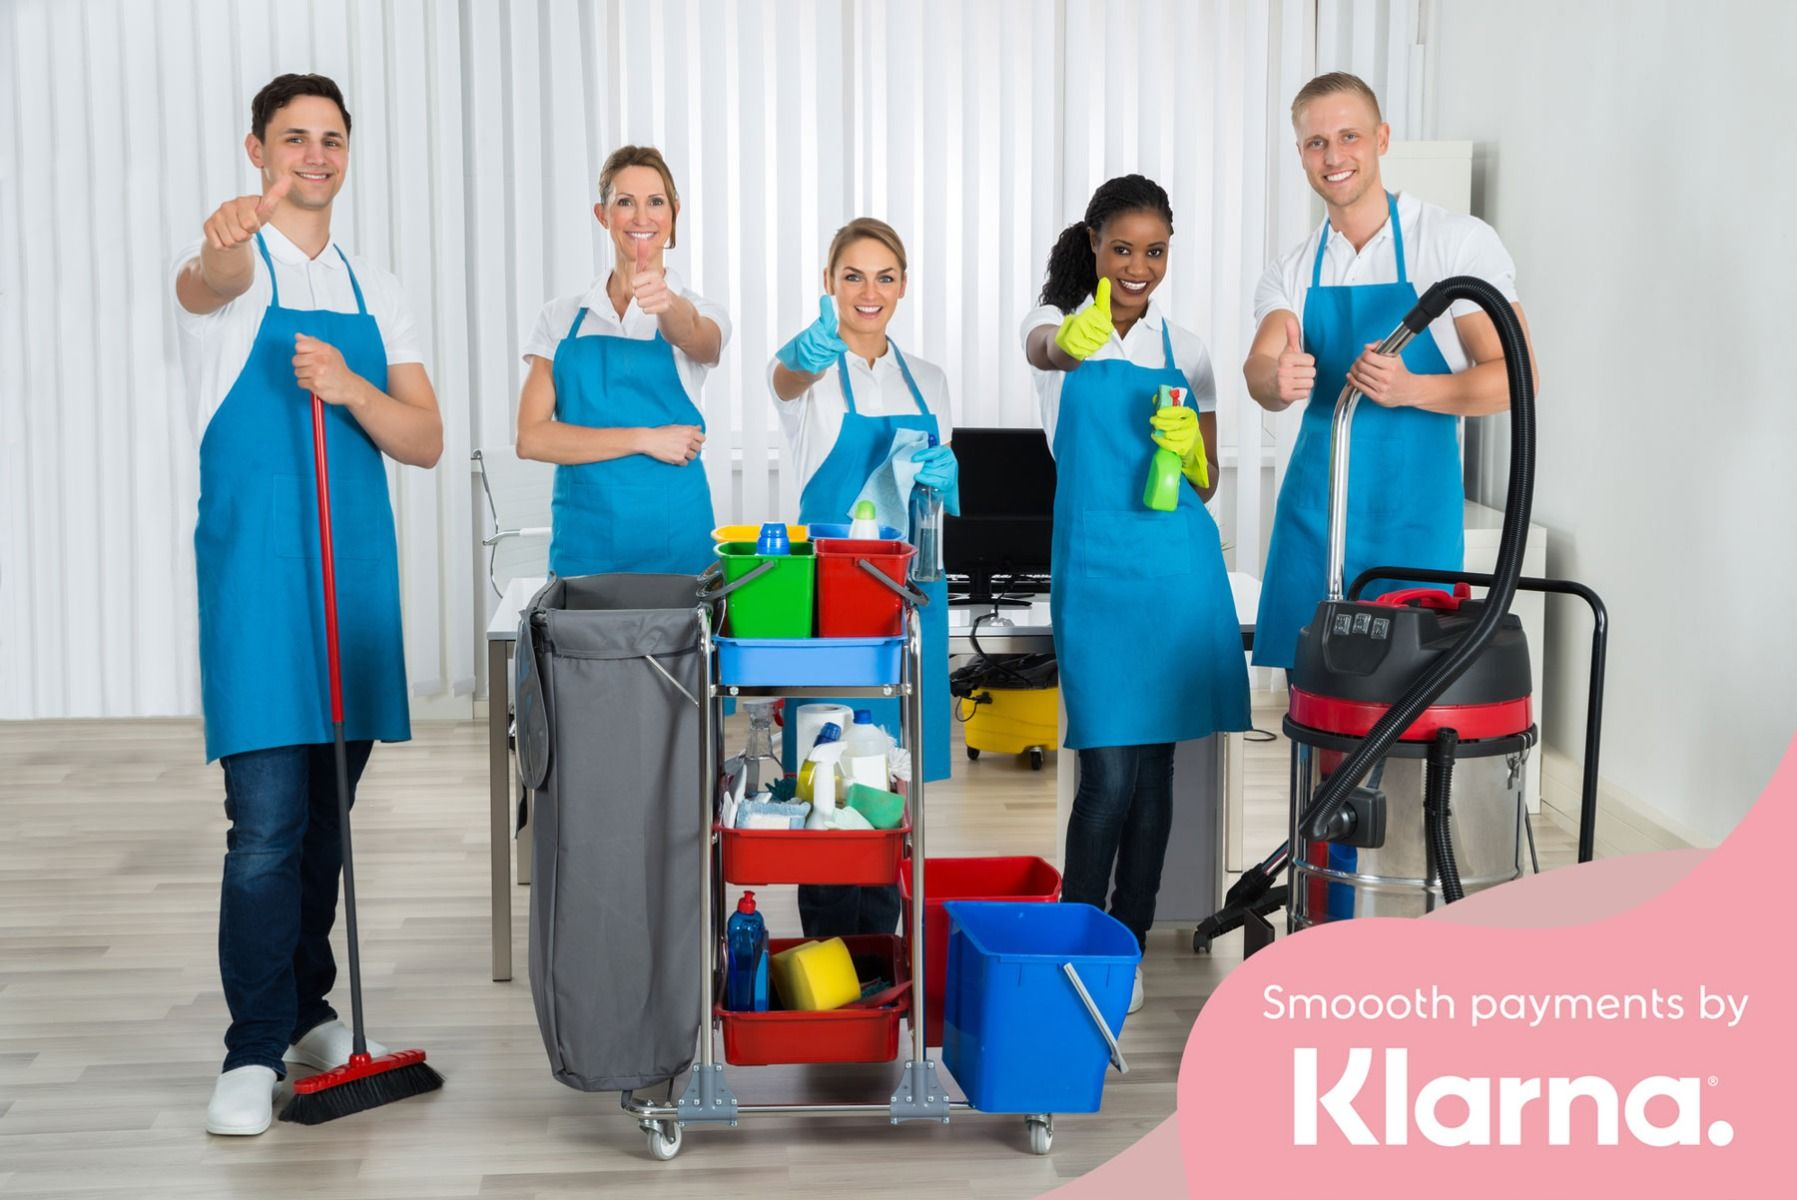 Pay the way you want with Klarna